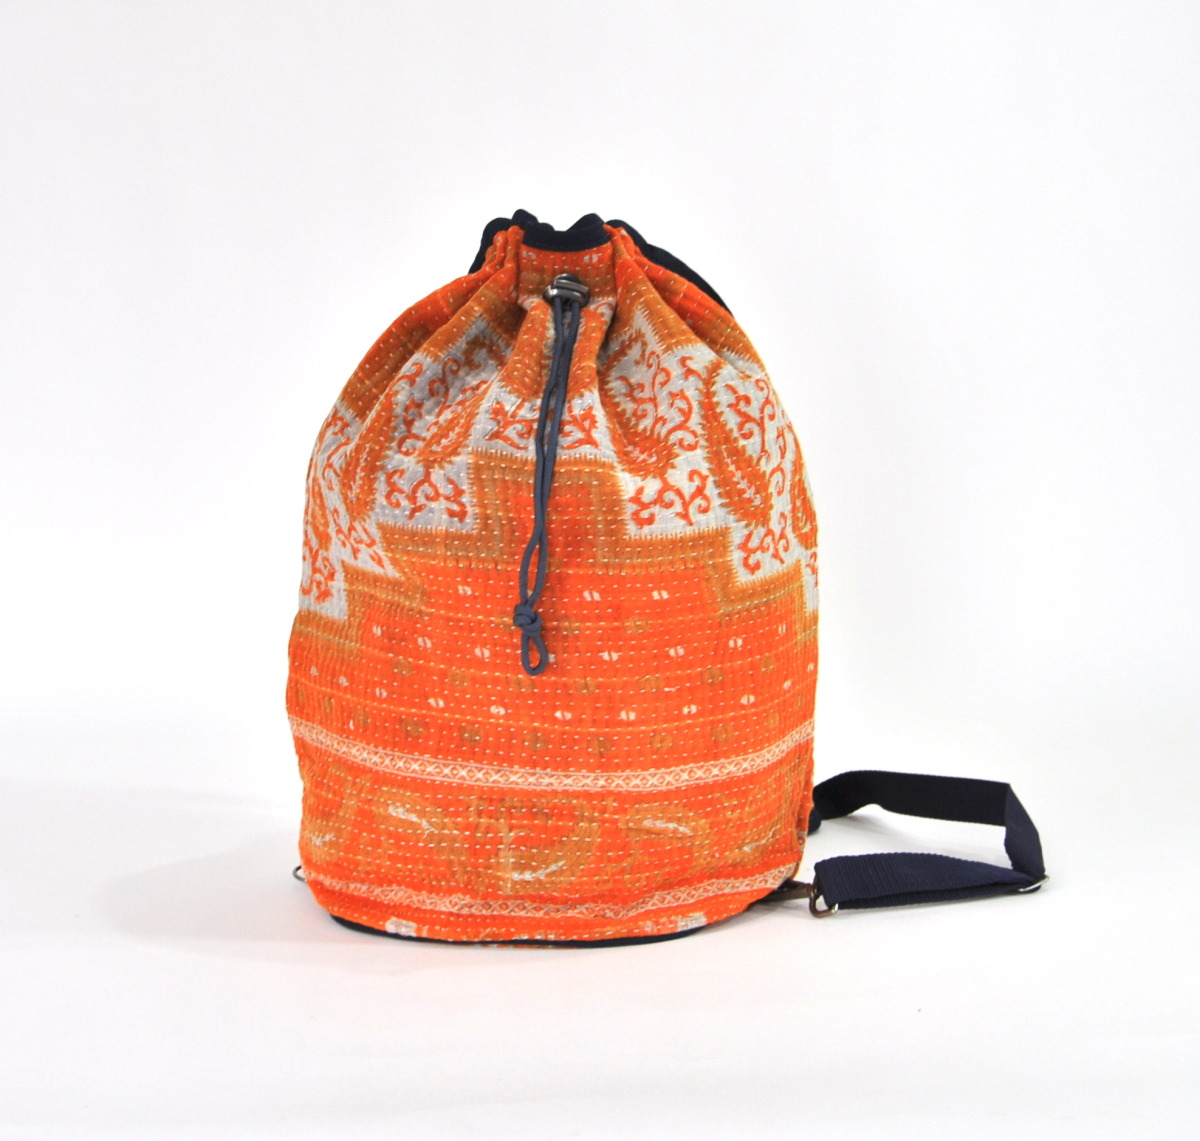 YESNESS Kantha Ganesha Crossbody Duffle/Yoga Mat Bag